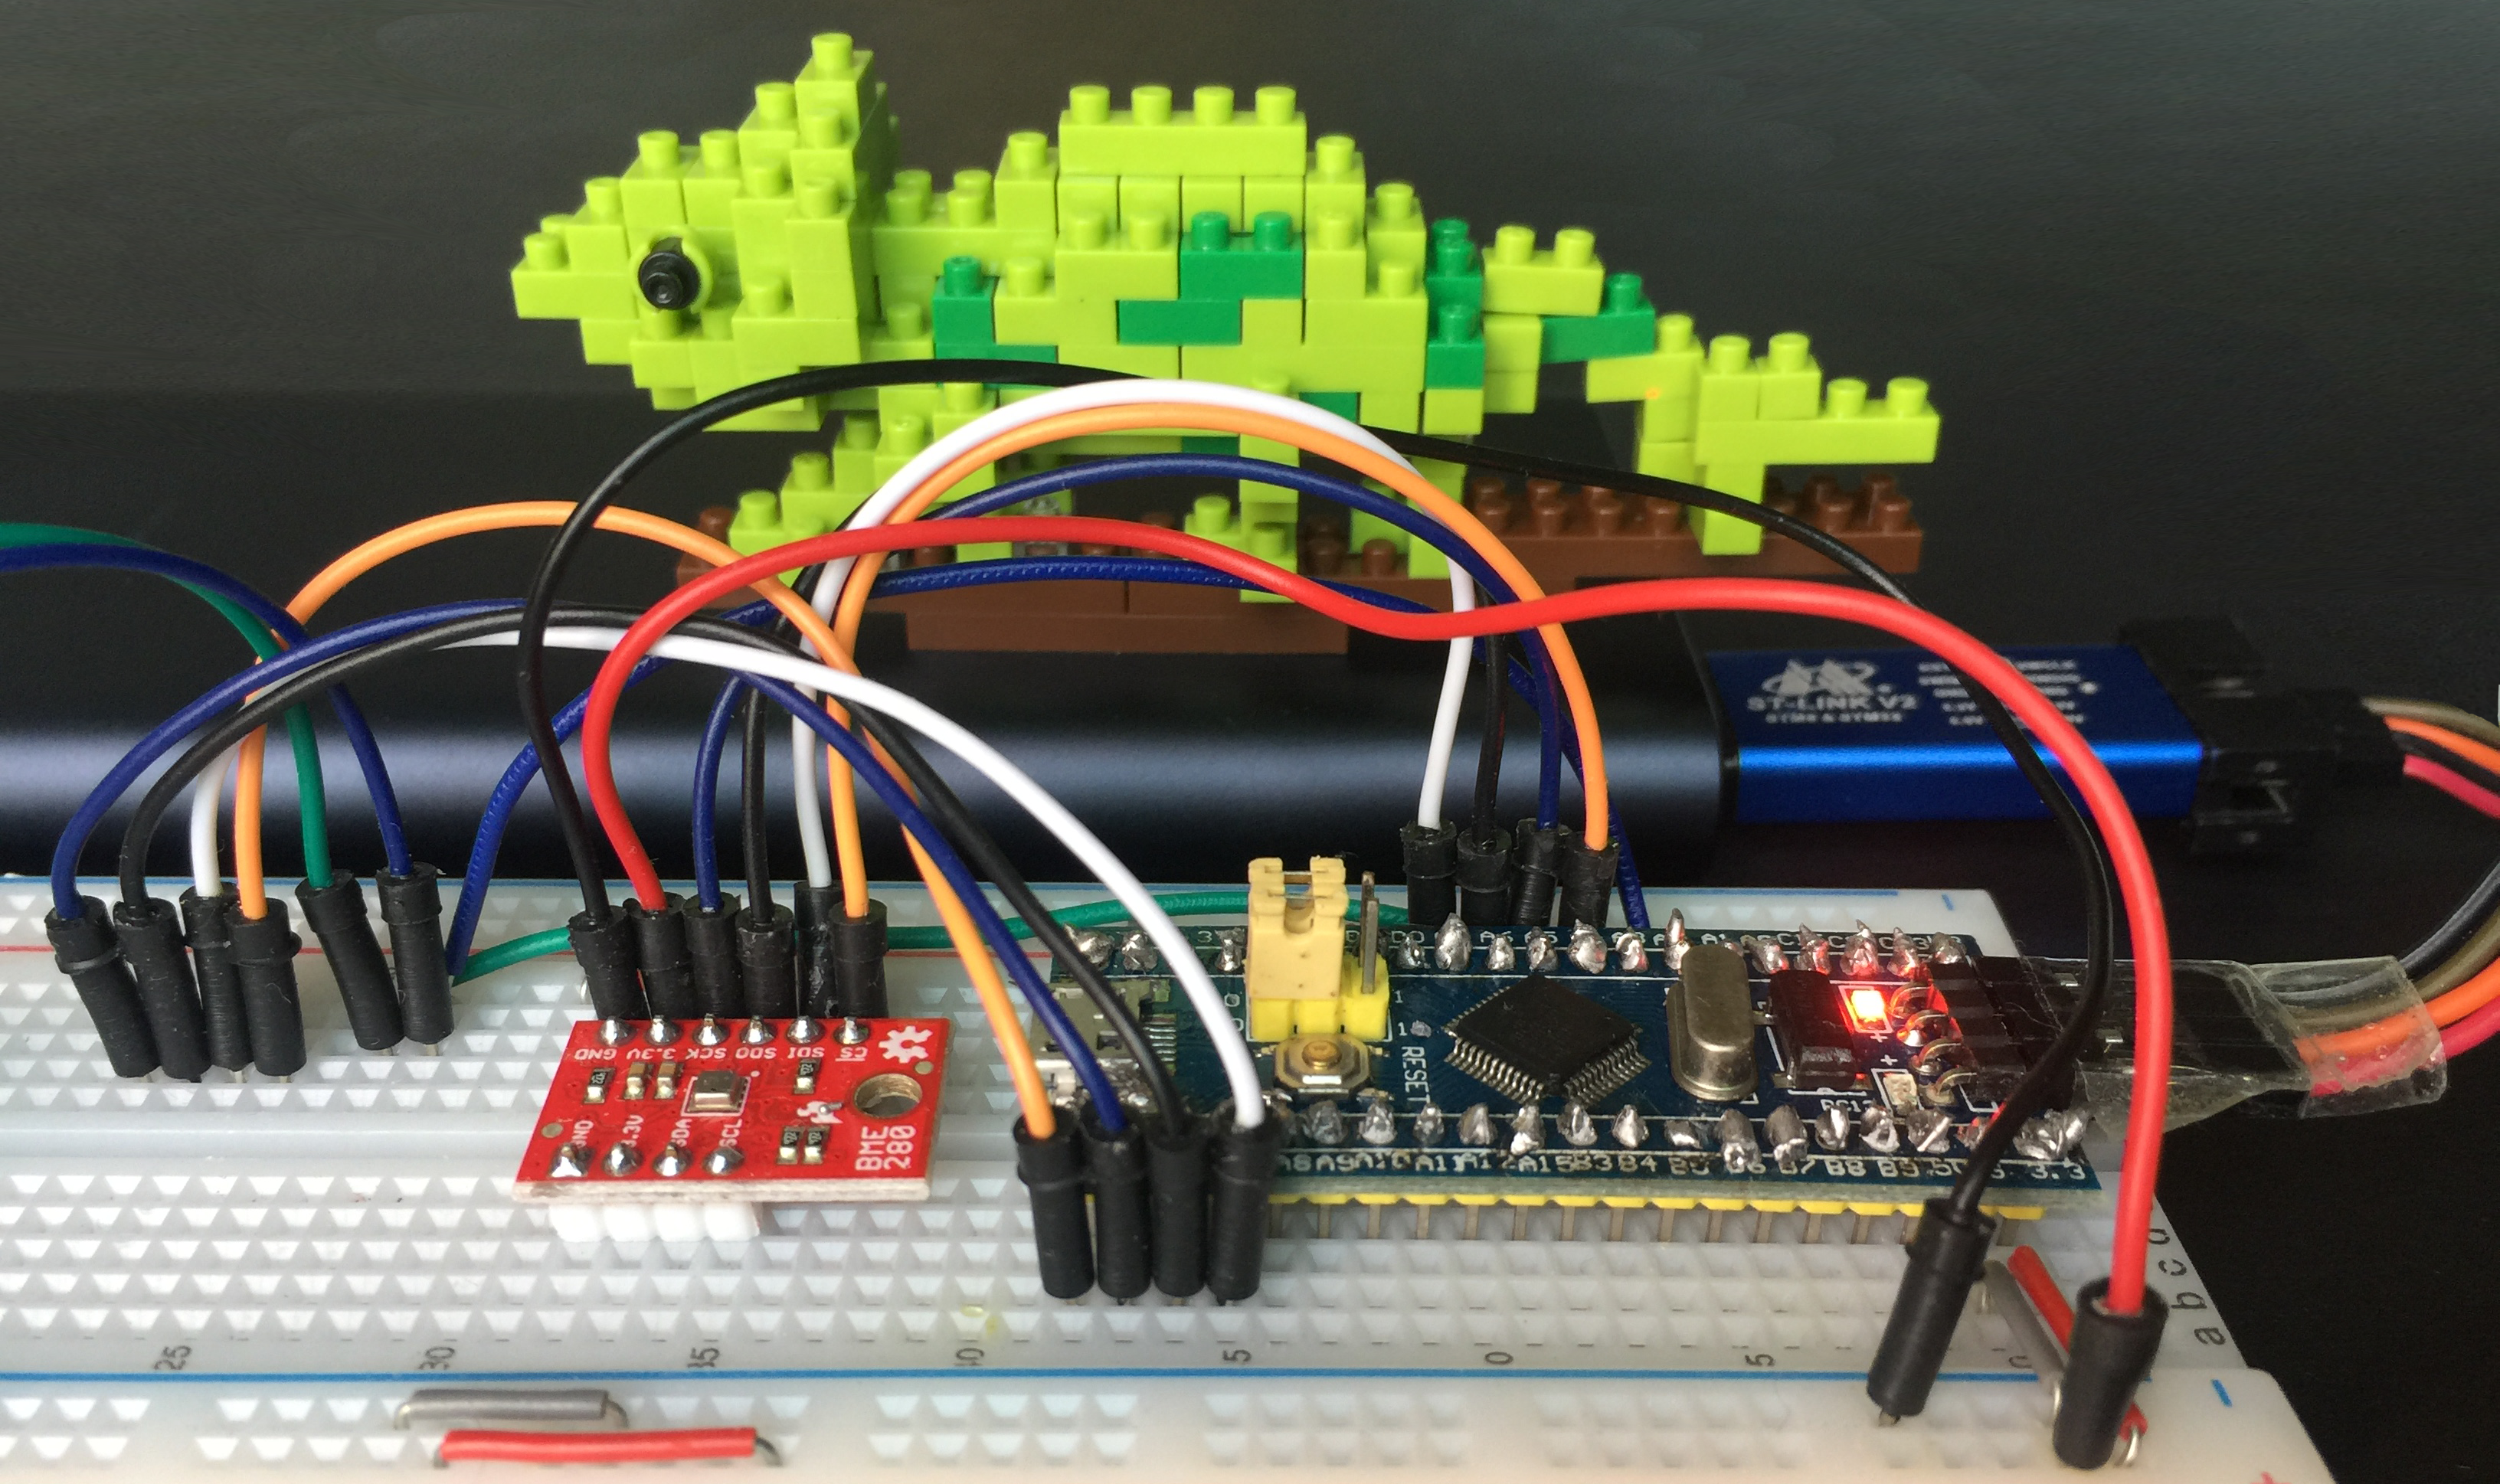 Create your IoT gadget with Apache Mynewt and STM32 Blue Pill